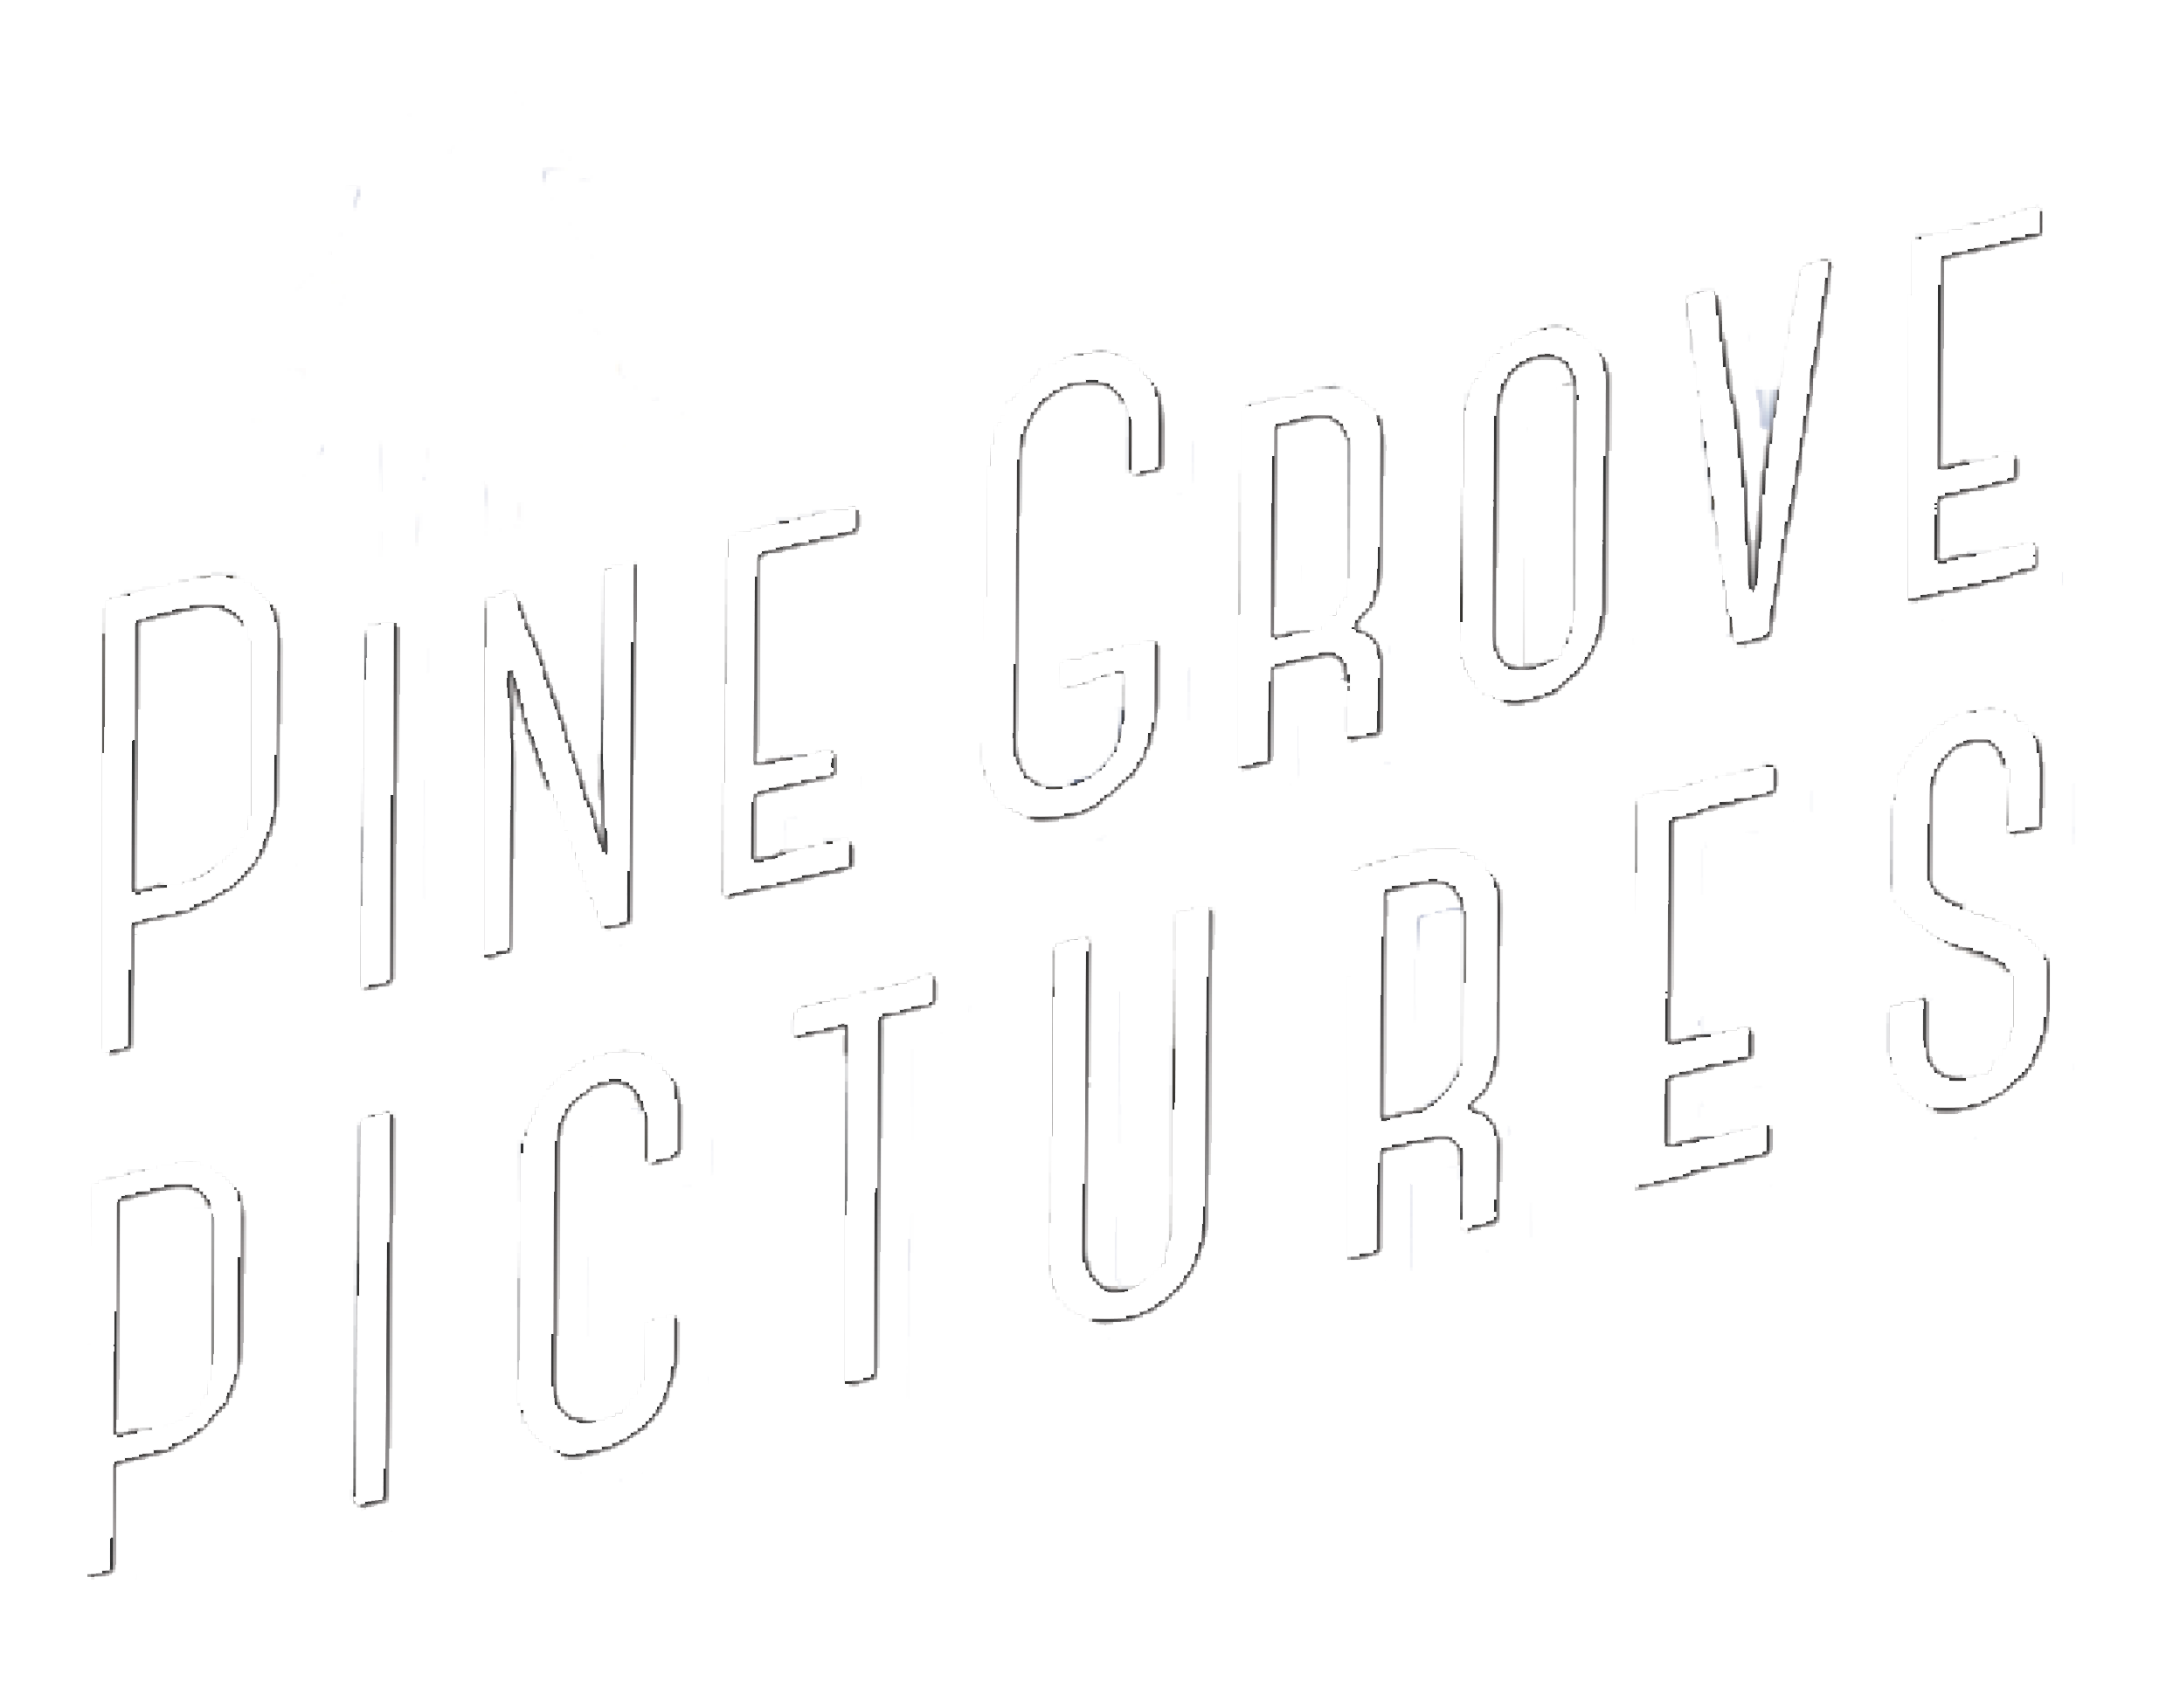 Pine Grove Pictures